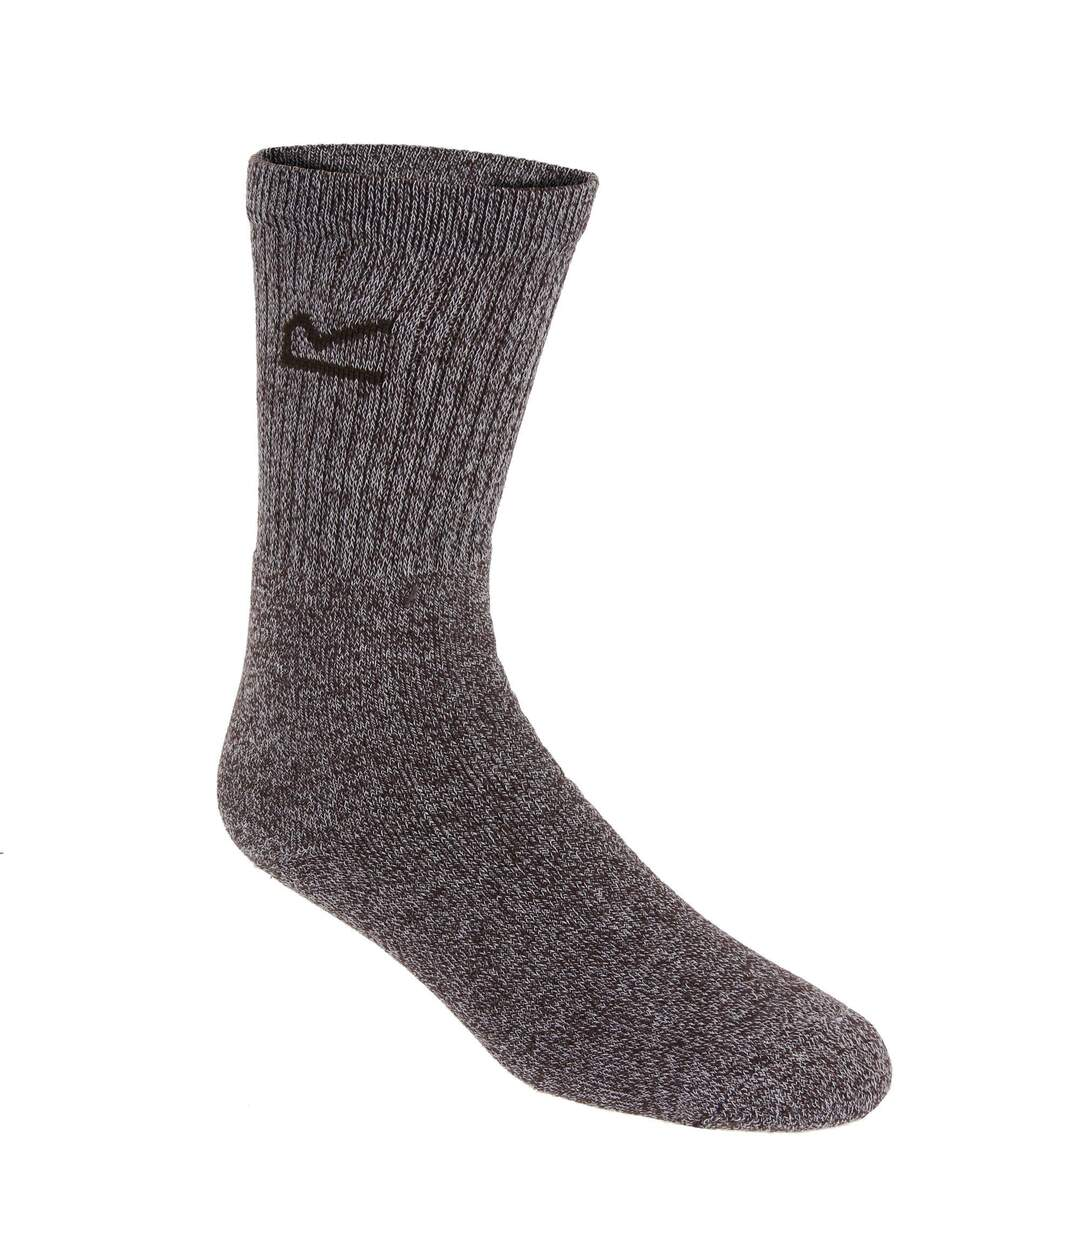 Regatta Great Outdoors Mens Cotton Rich Casual Socks (Pack Of 3) (Brown Marl) - UTRG786